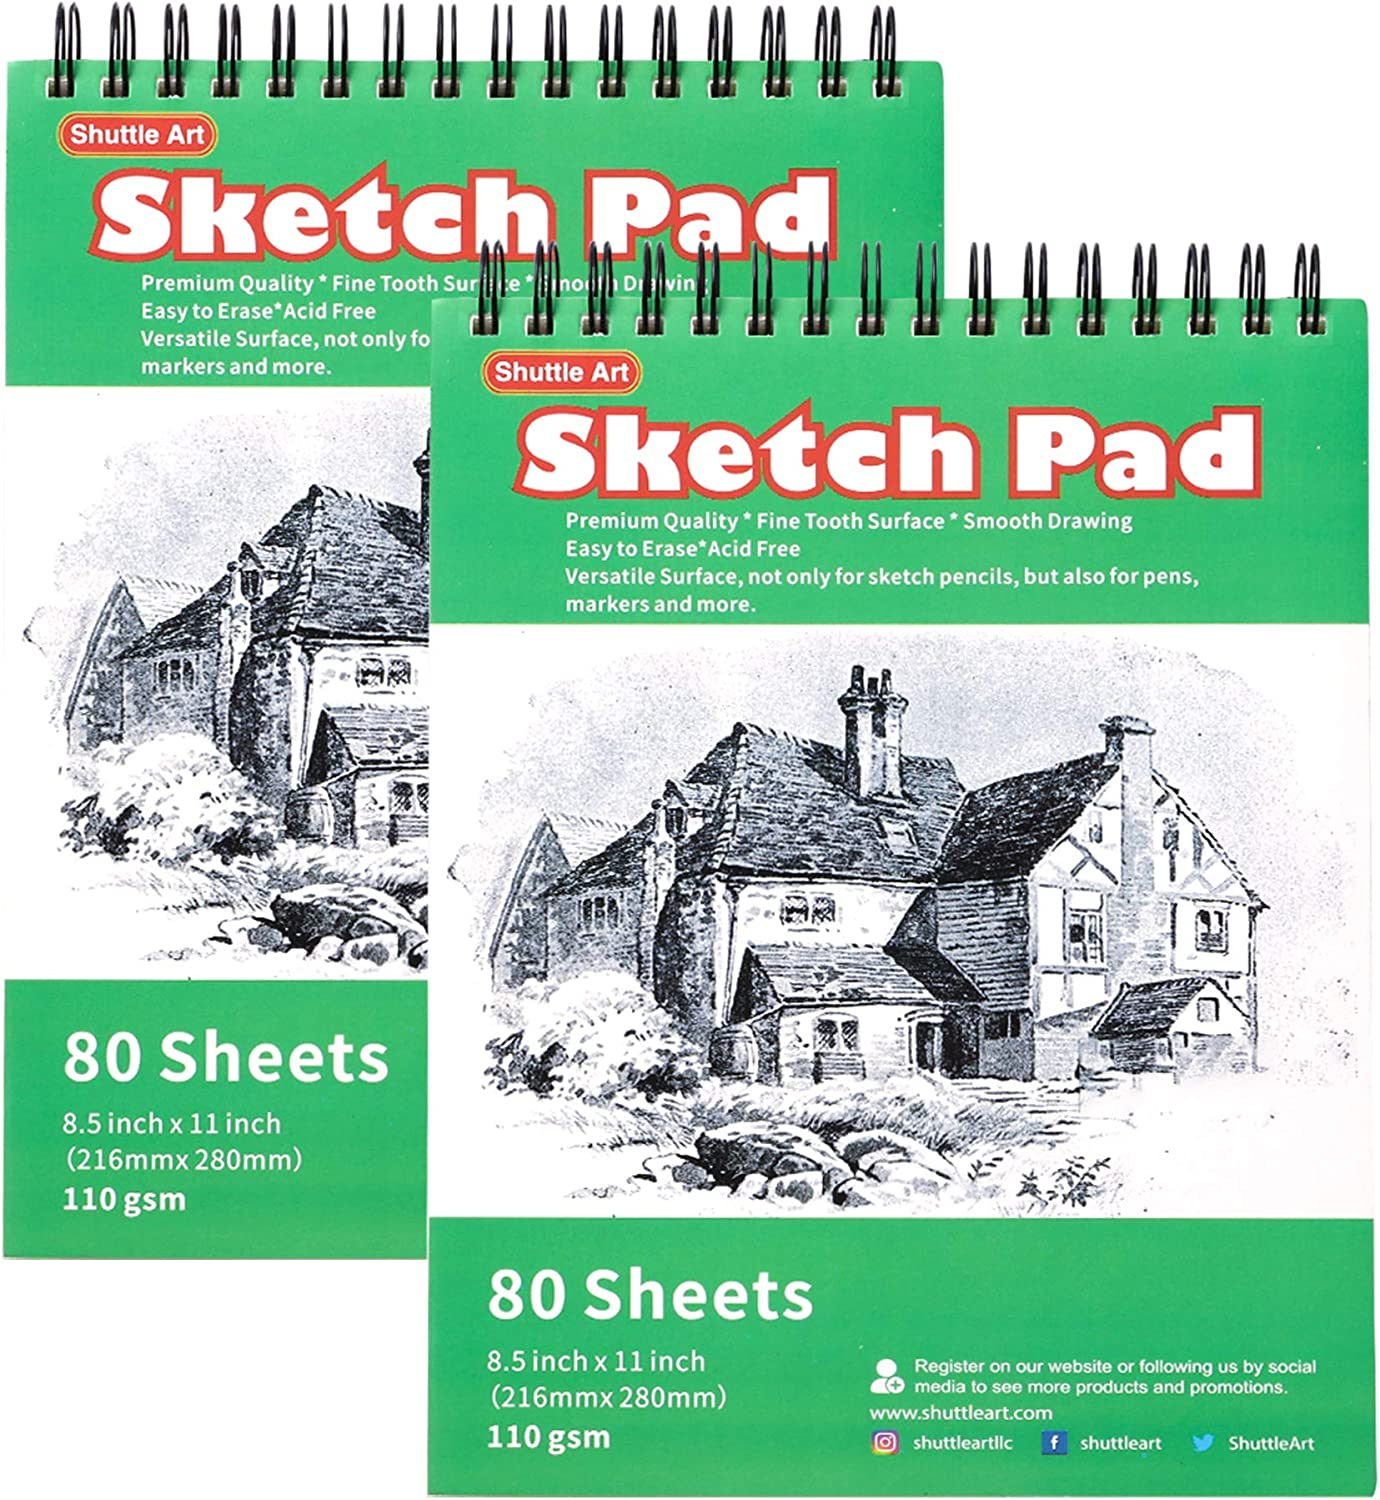 Artists Sketch Books 2 Pack 8.5 x 11 inch Shuttle Art 160 Sheets of Sketch Paper Pad Ideal for Drawing and School Supplies